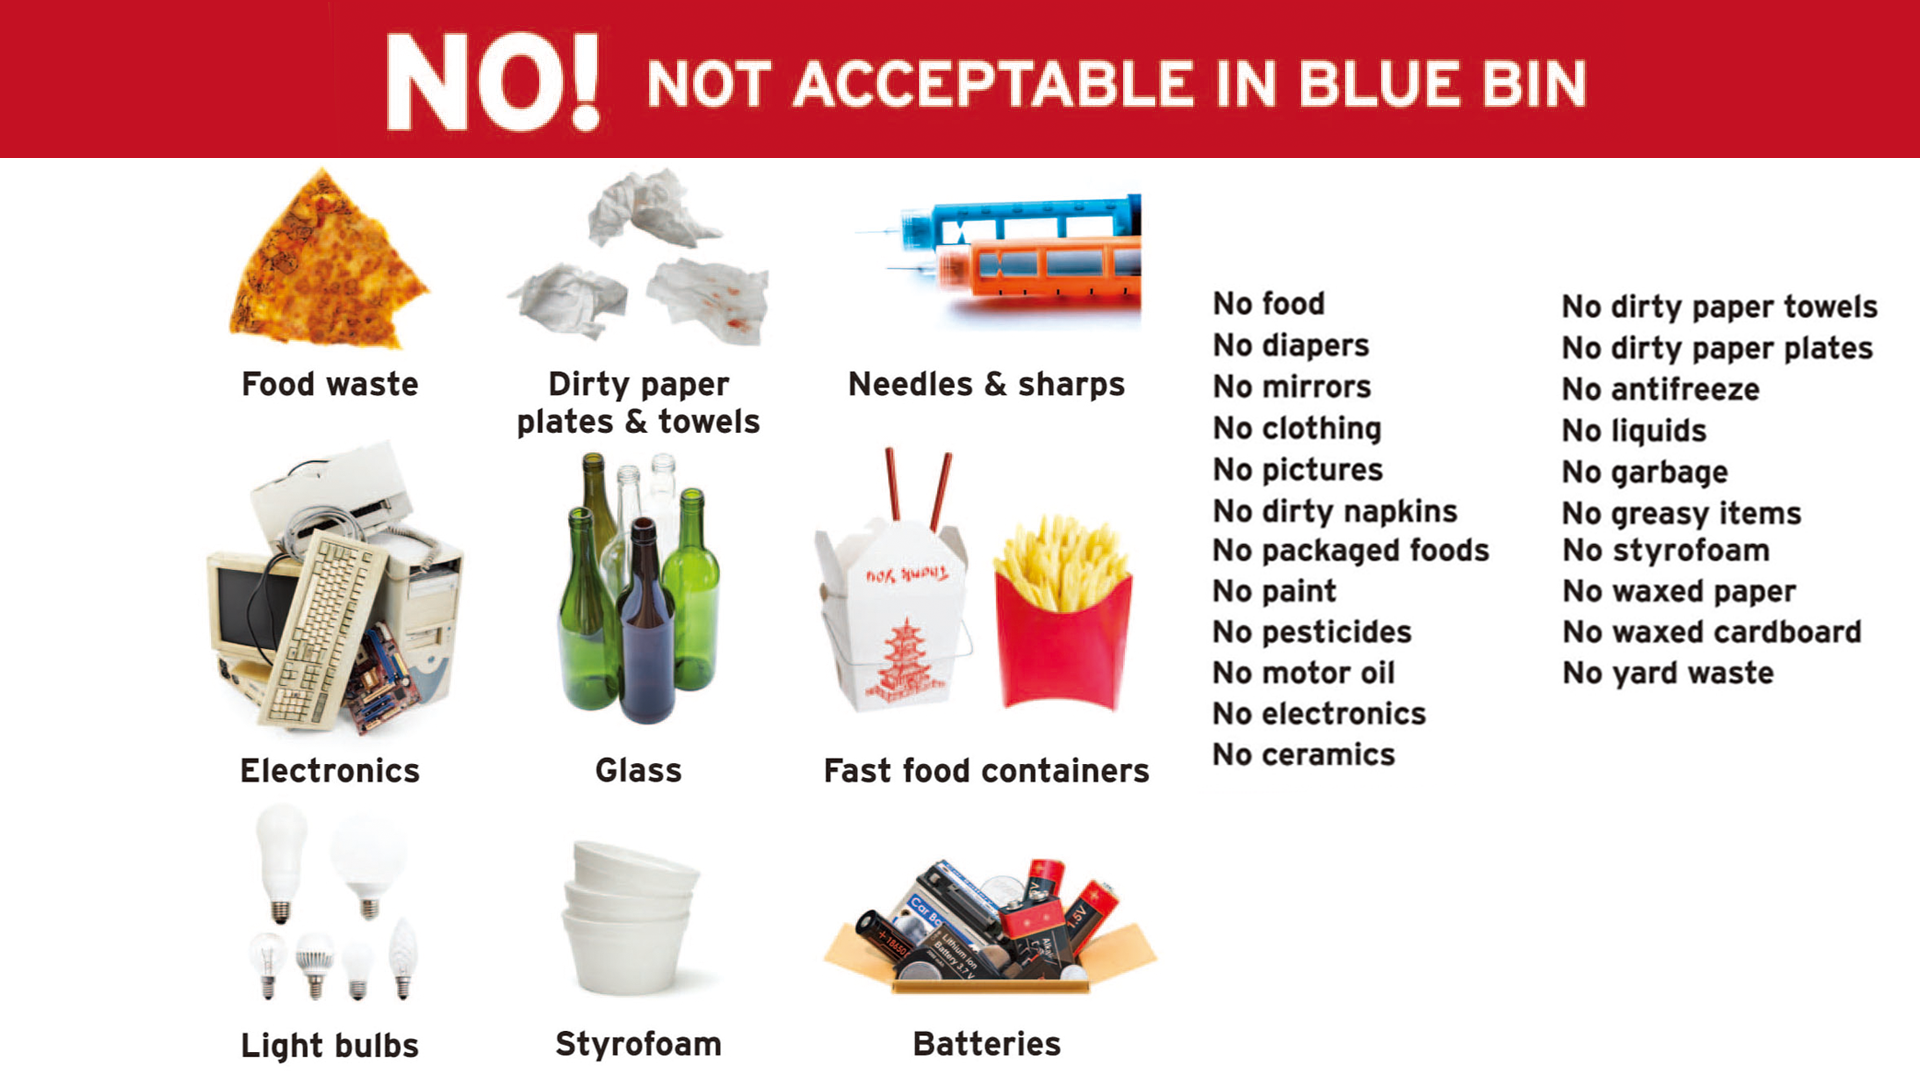 Graphic image of Items not allowed in blue recycling bin